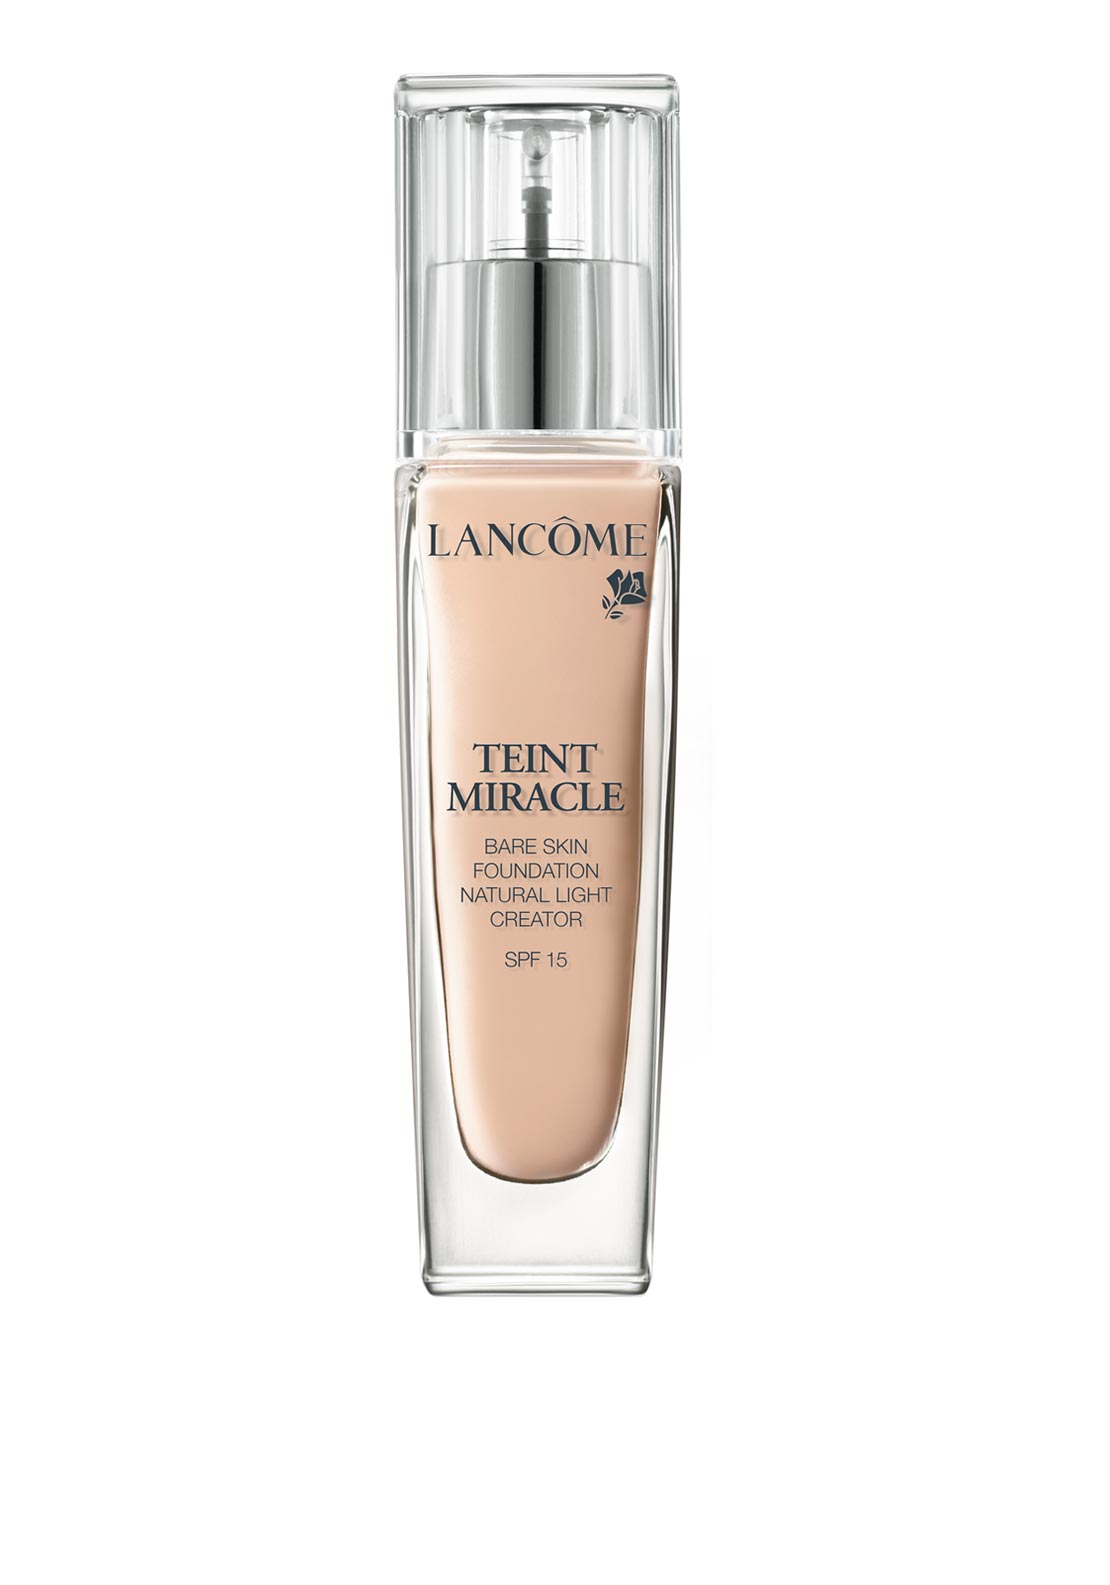 Lancome Teint Miracle Bare Skin Foundation, 04 Beige Nature